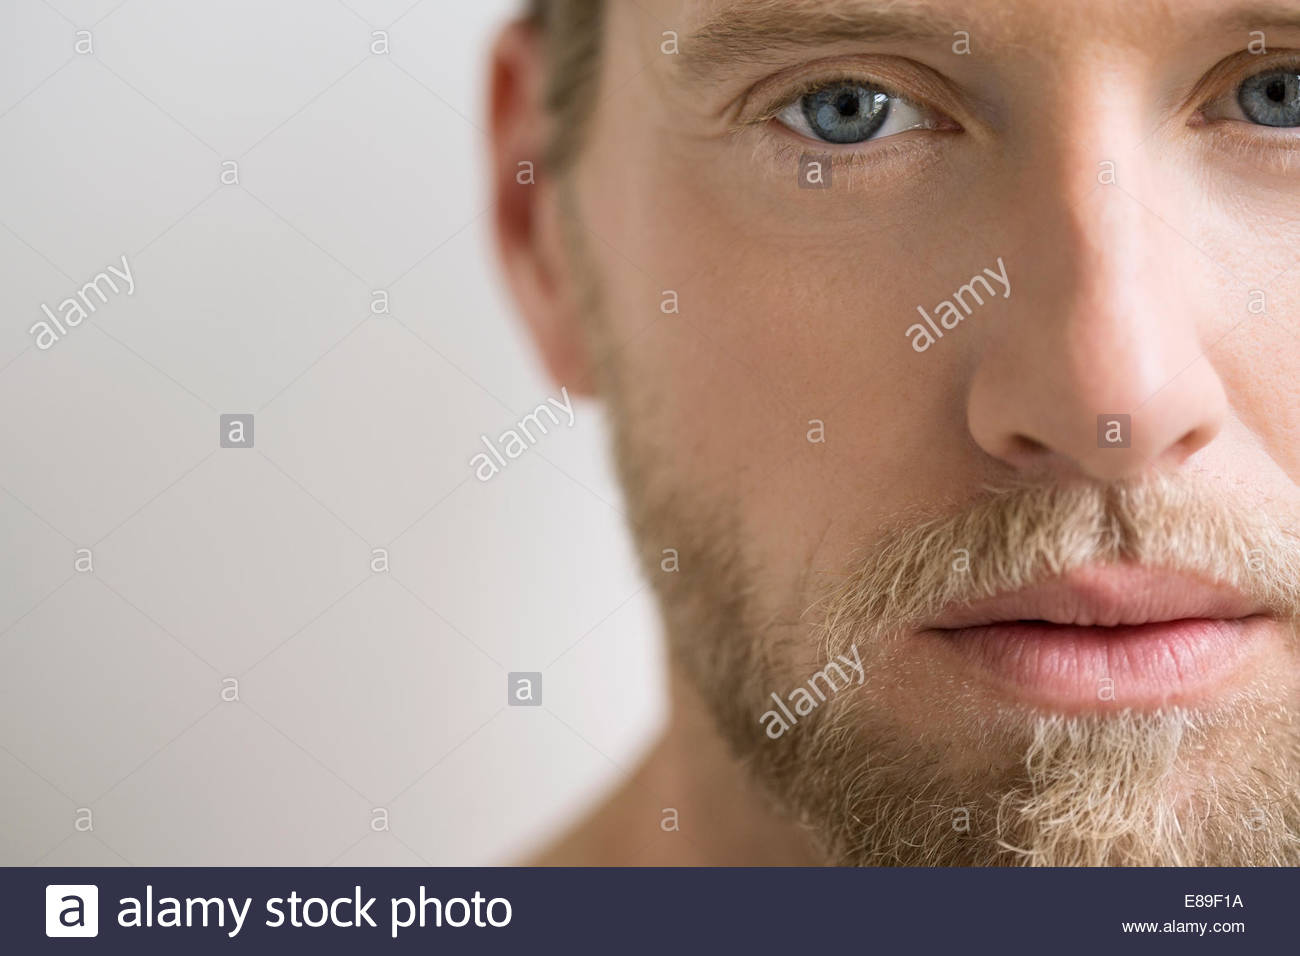 Close up portrait of man with blonde hair - Stock Image